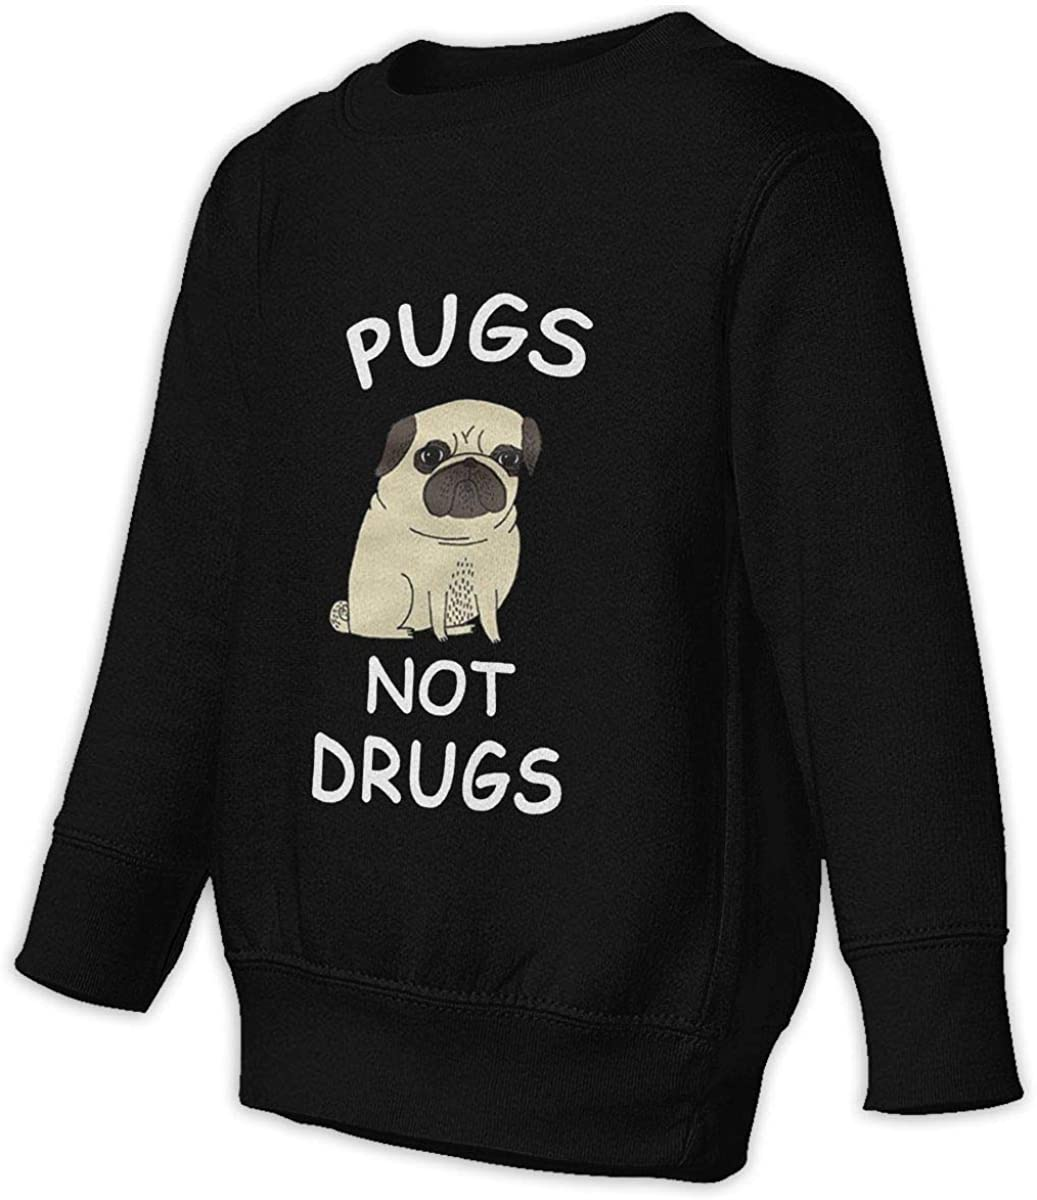 Pugs Not Drugs Boys Girls Pullover Sweaters Crewneck Sweatshirts Clothes for 2-6 Years Old Children